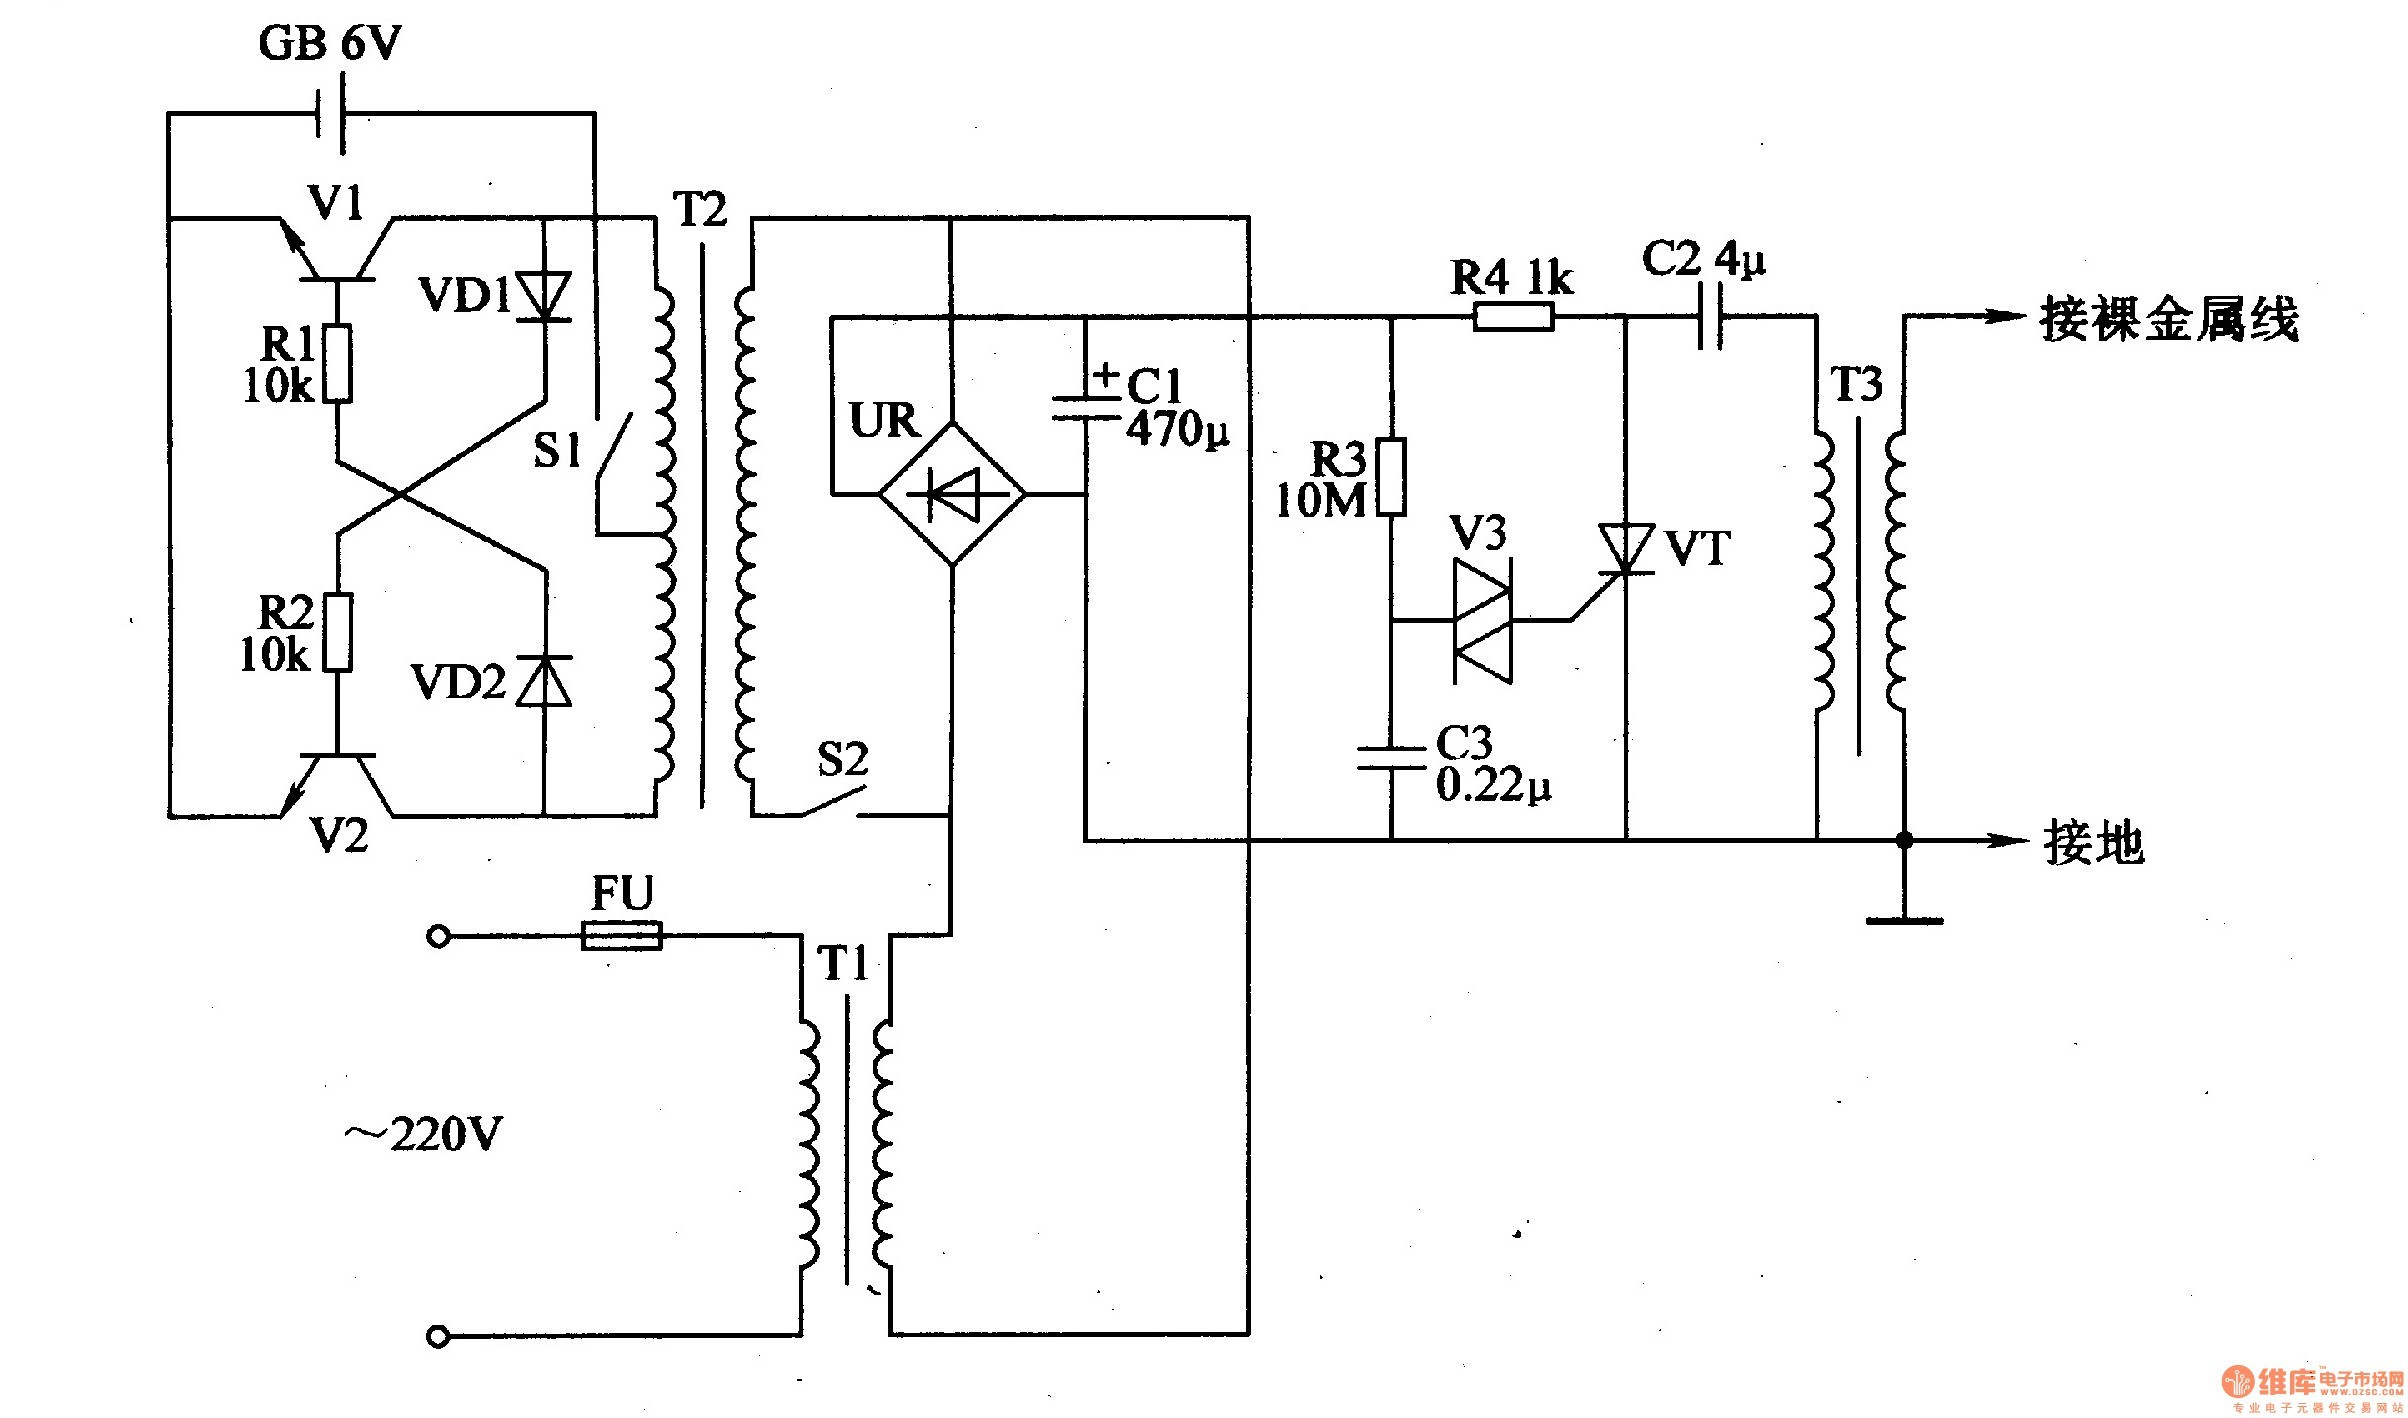 Wiring Diagram for Electric Fence New Unique How to Wire An Electric Fence Diagram Wiring